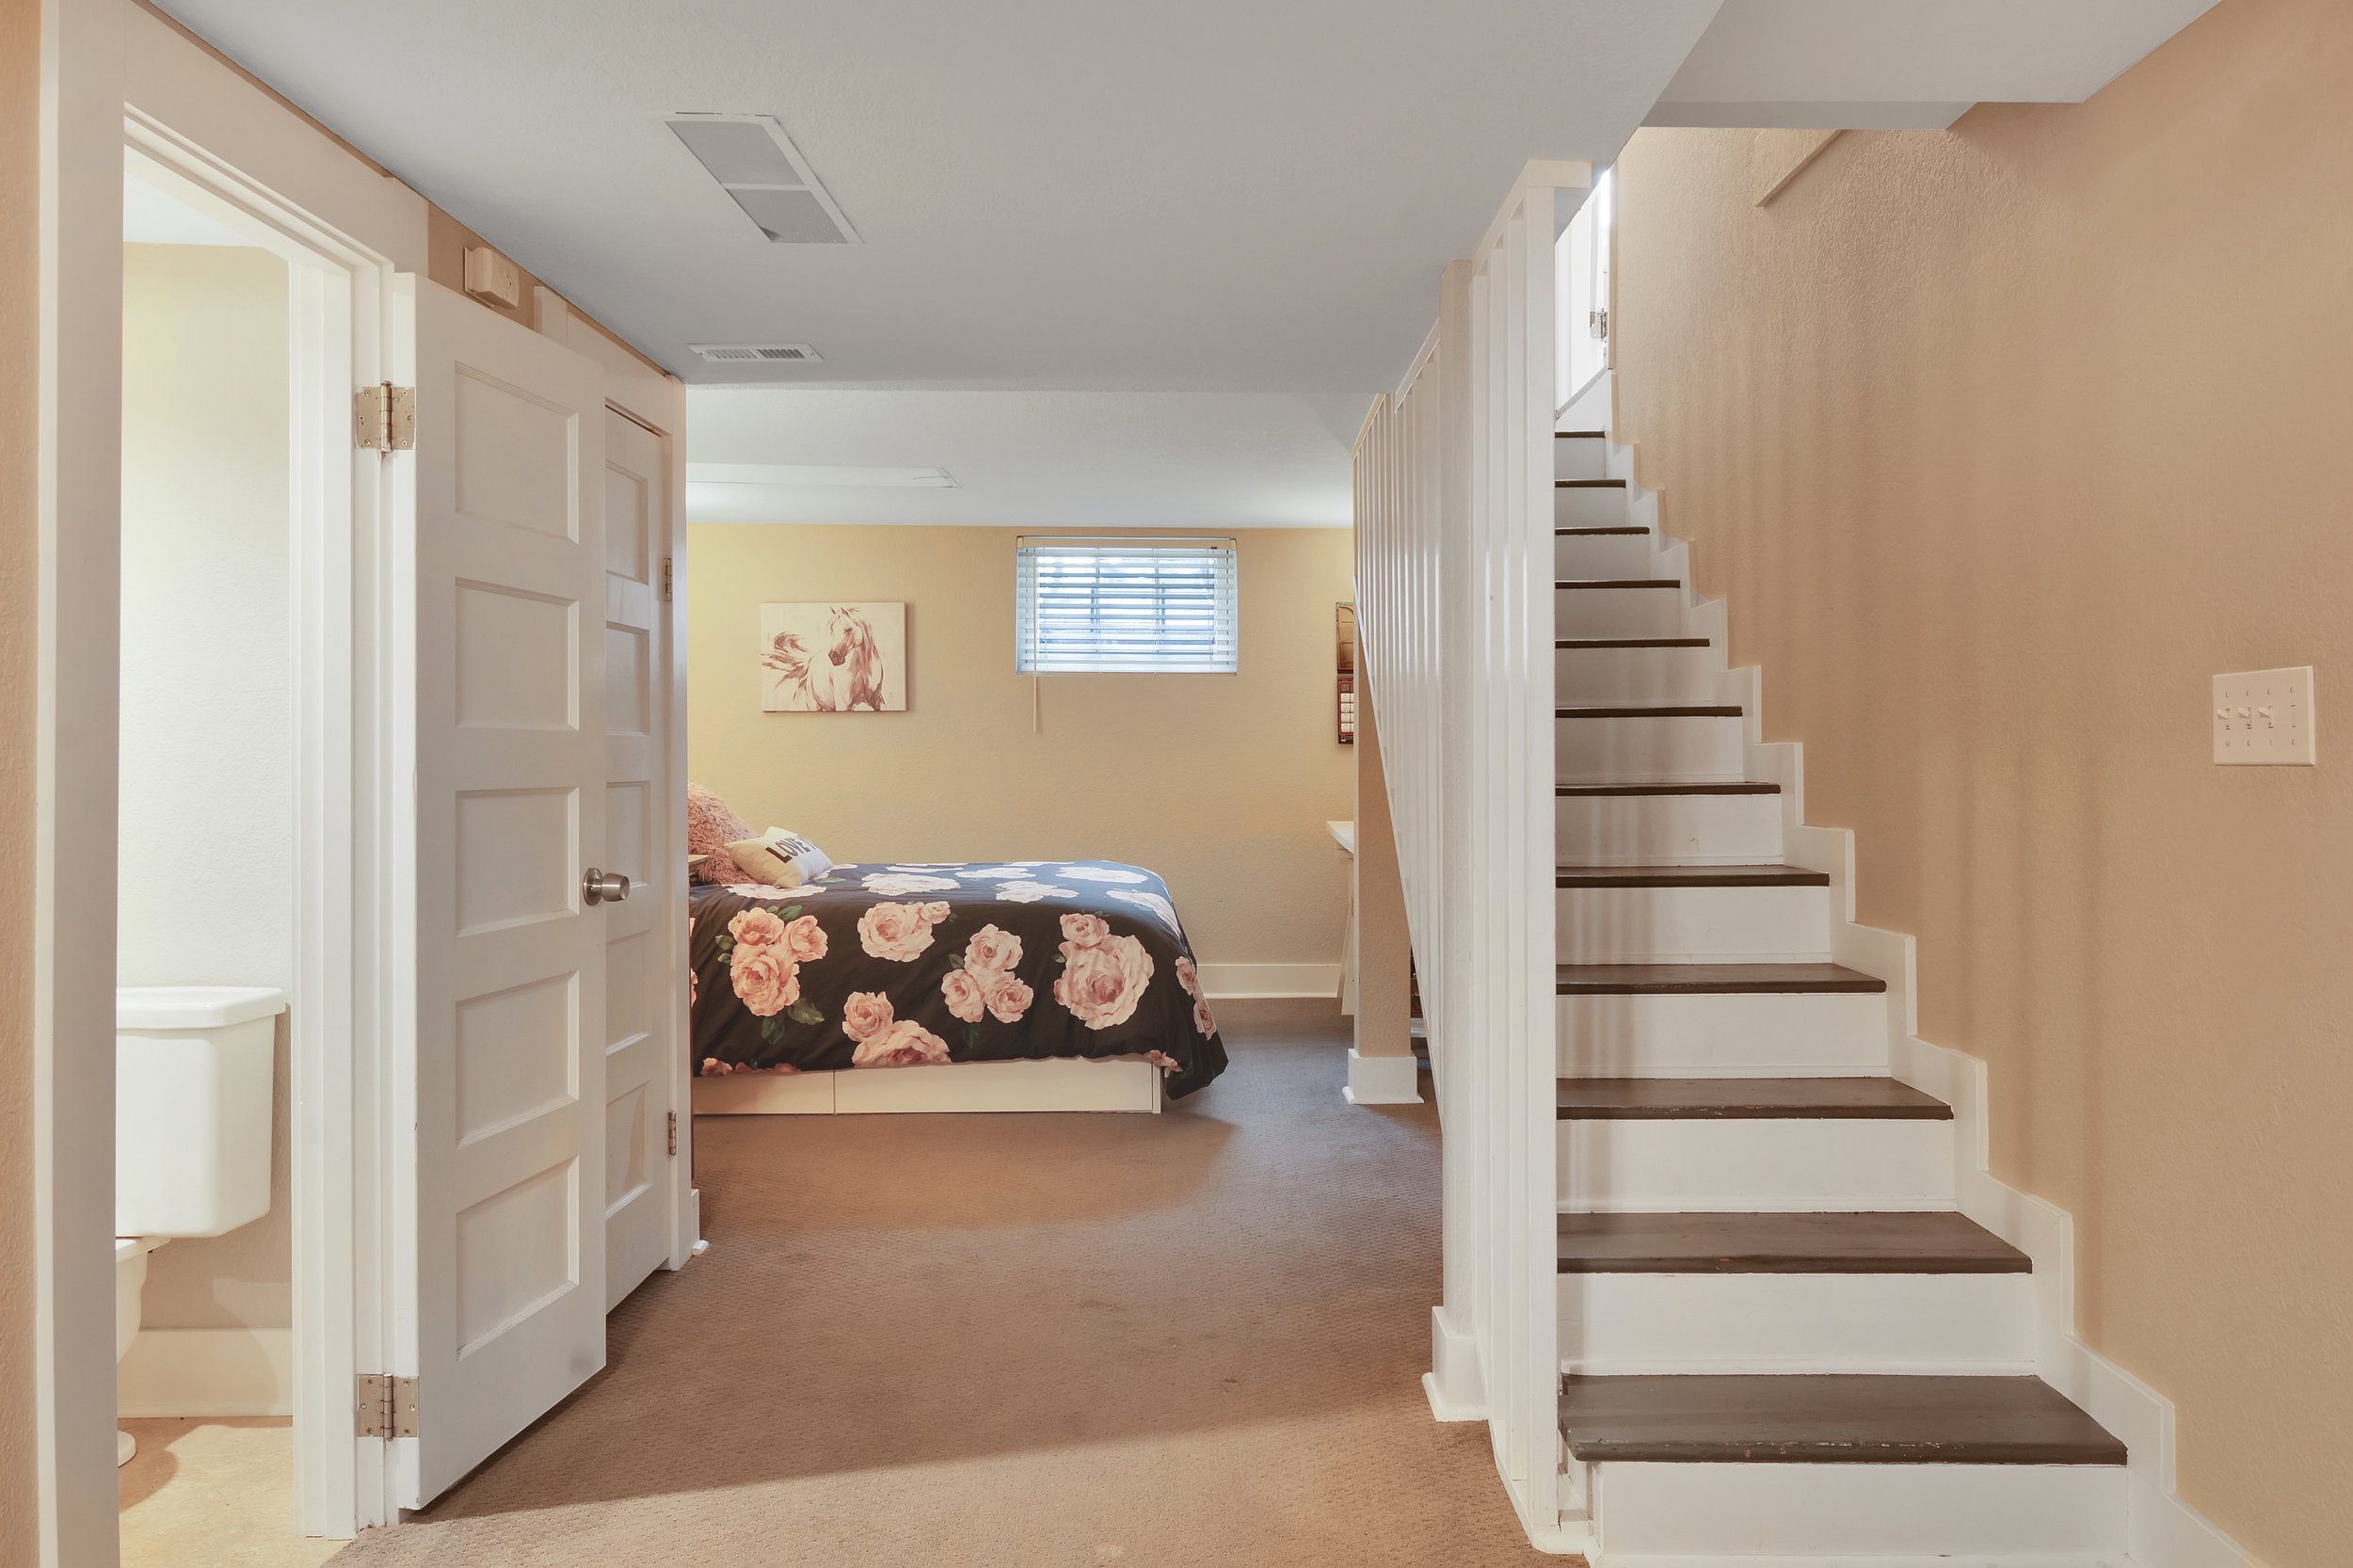 The finished basement offers additional living space and flexibility to the home. Notice a half bath on the left.